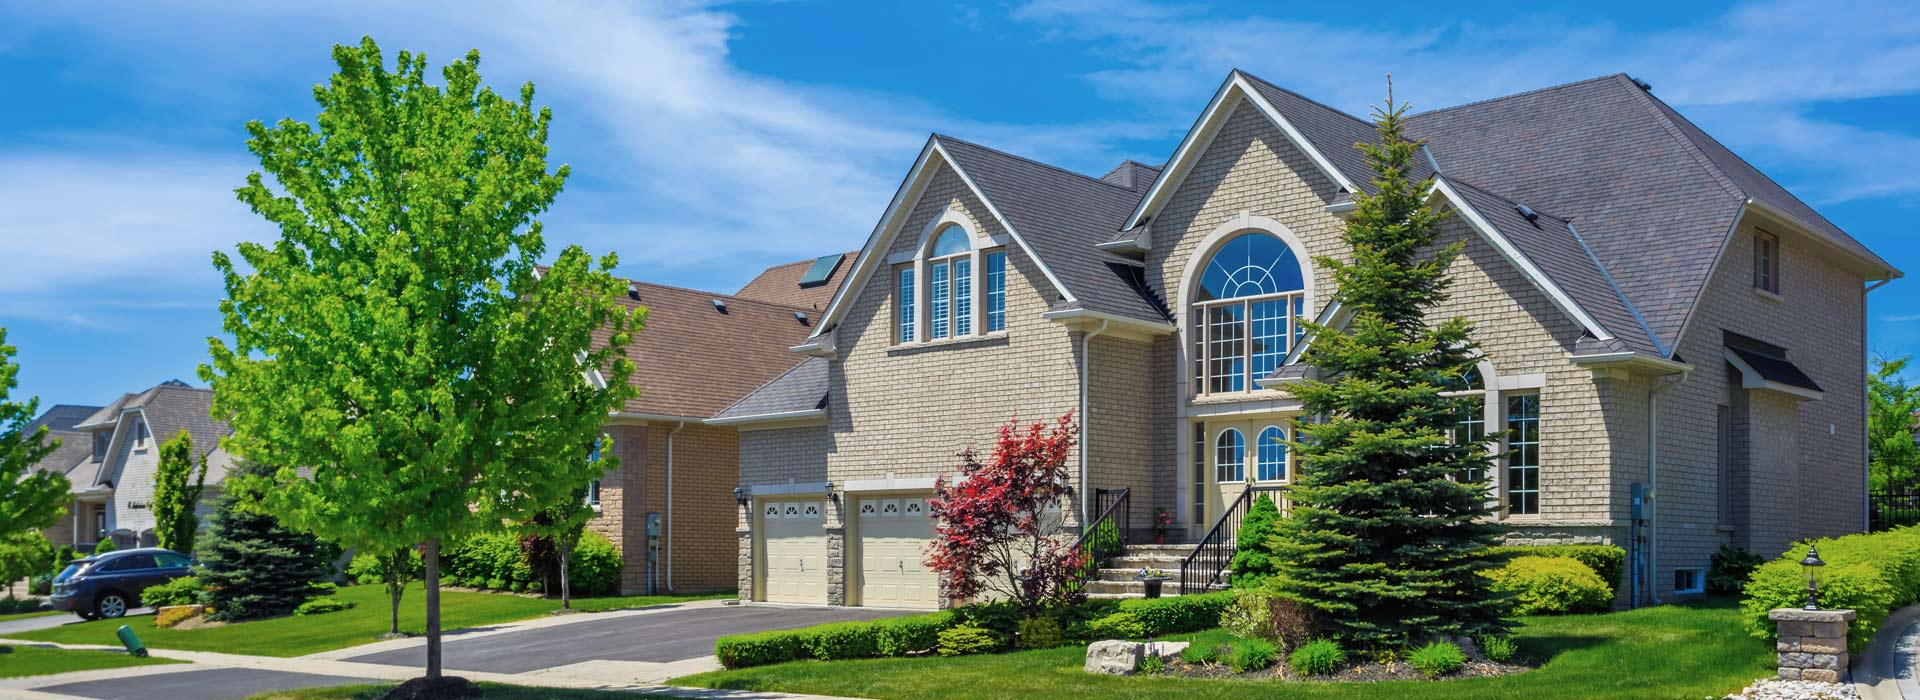 Iowa Home Inspection Des Moines Luxury Home